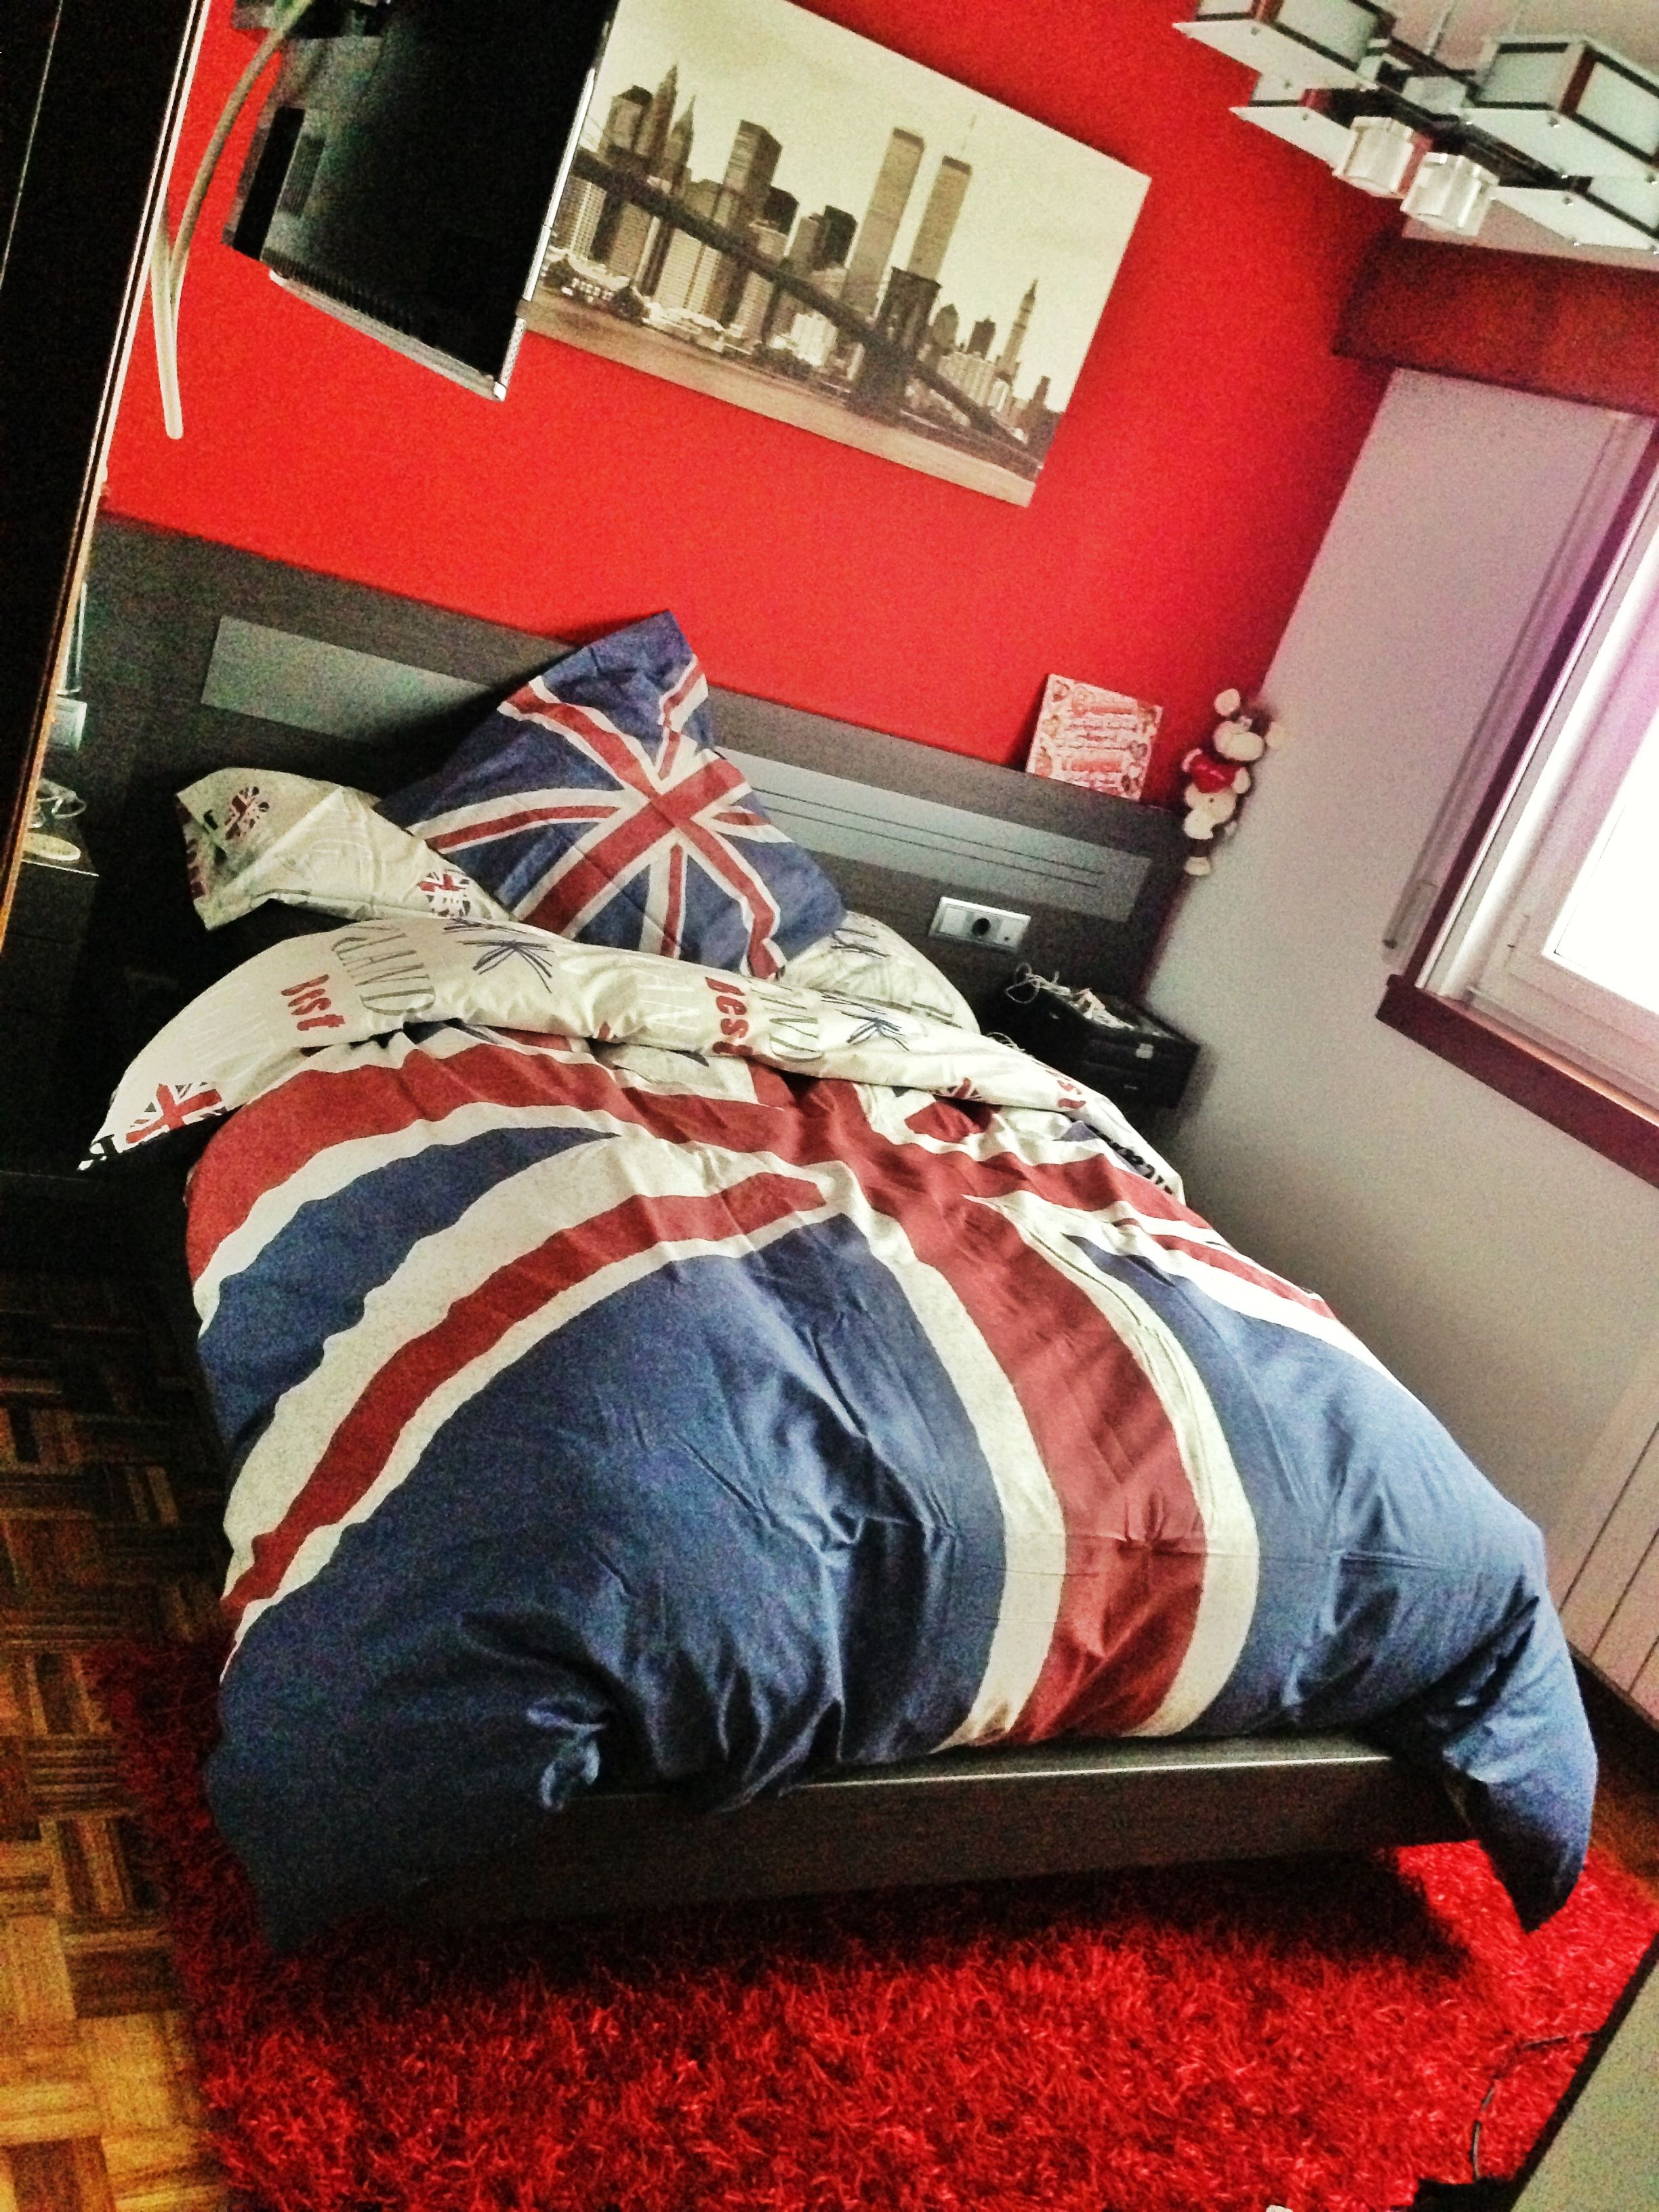 Red Statement Wall, Sloppy Unionjack Comforter